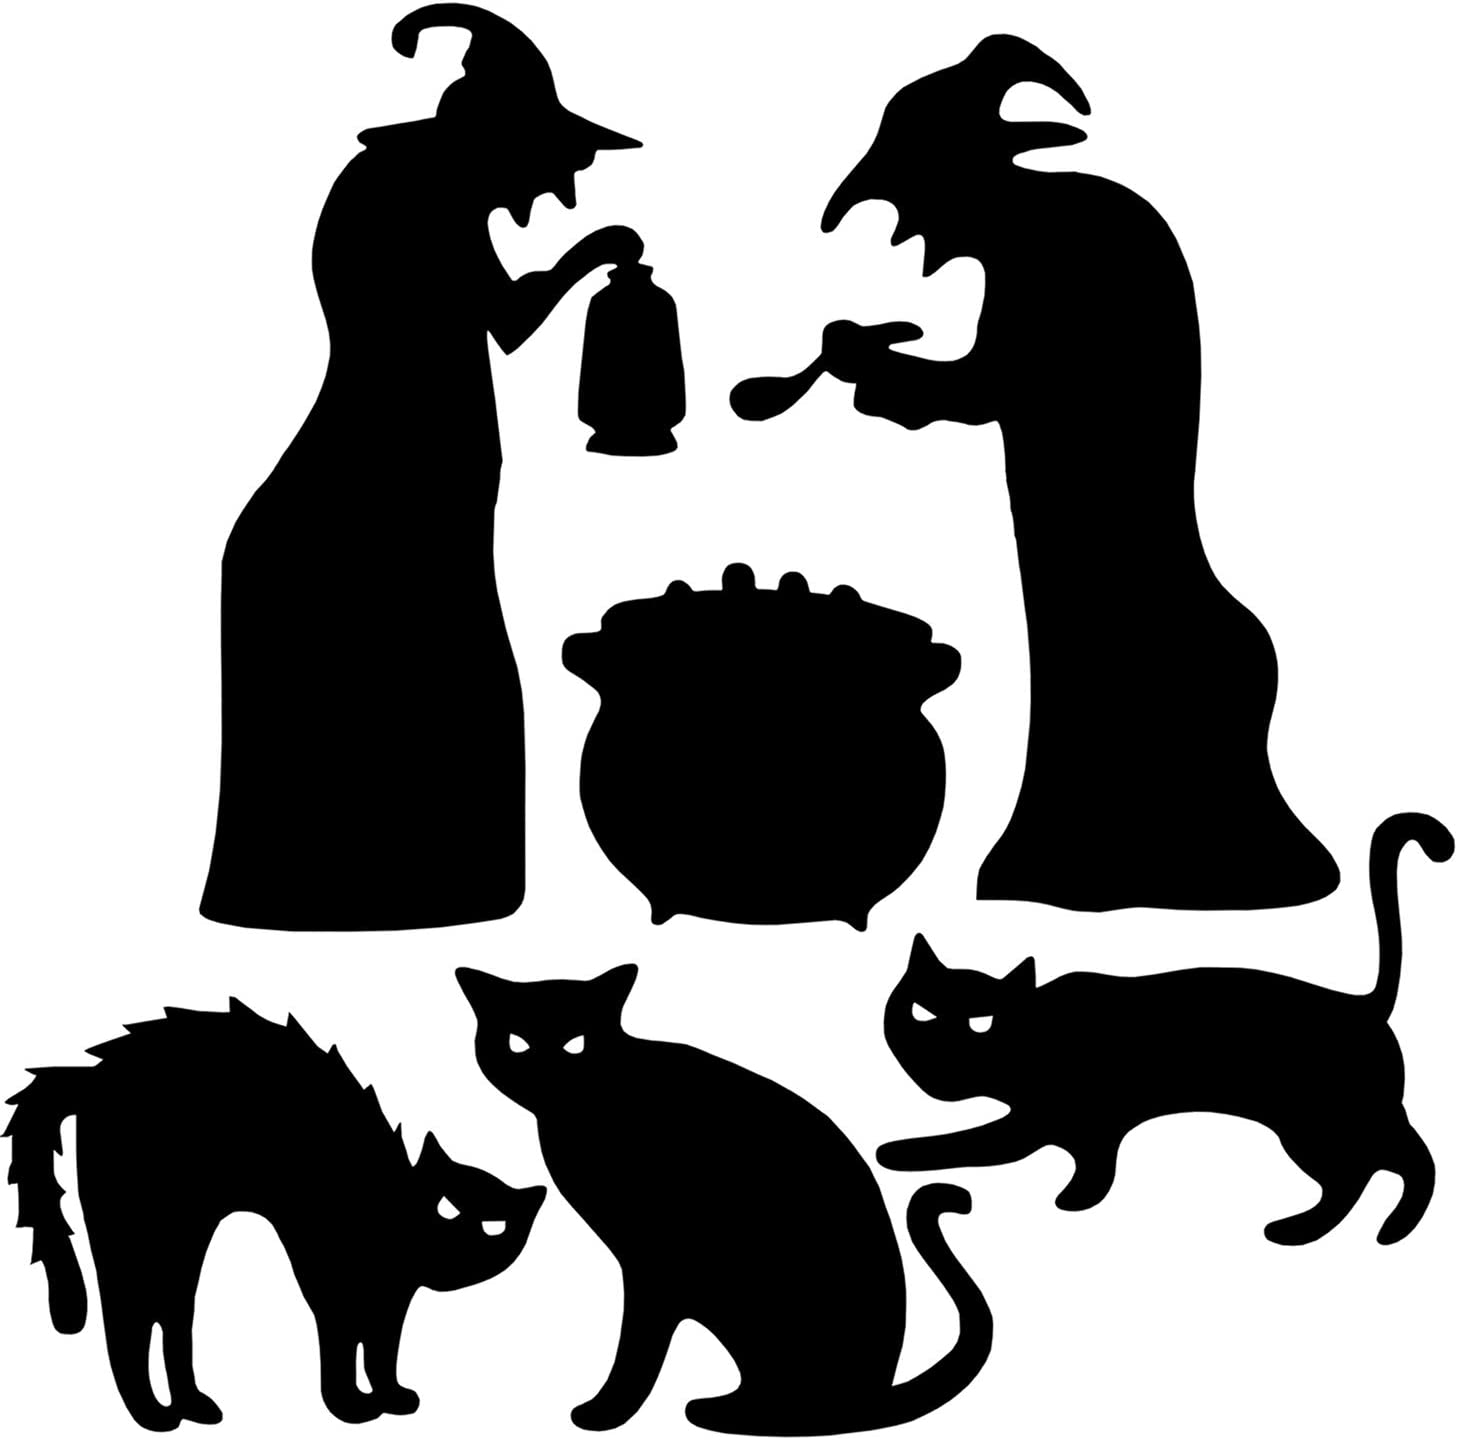 Deloky 6 PCS Halloween Yard Signs with Stakes-Witches Black Cauldron and Black Cat Silhouette Yard Signs with Stakes-Halloween Yard Lawn Party Signs Decorations